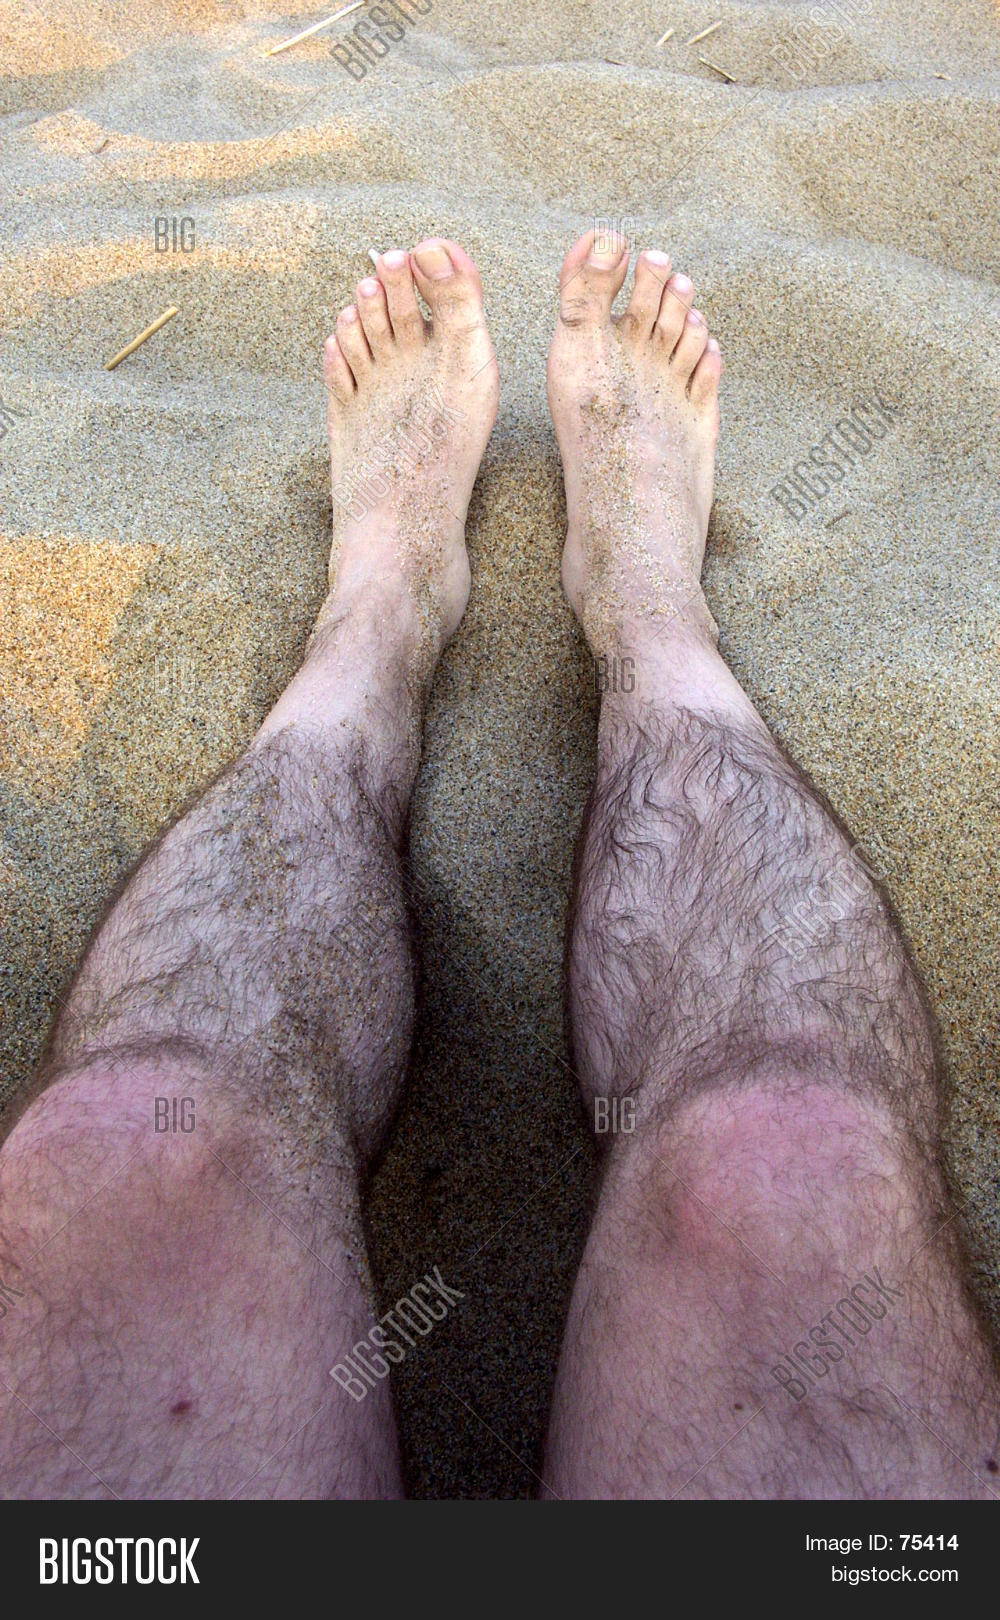 pictures-of-hairy-legs